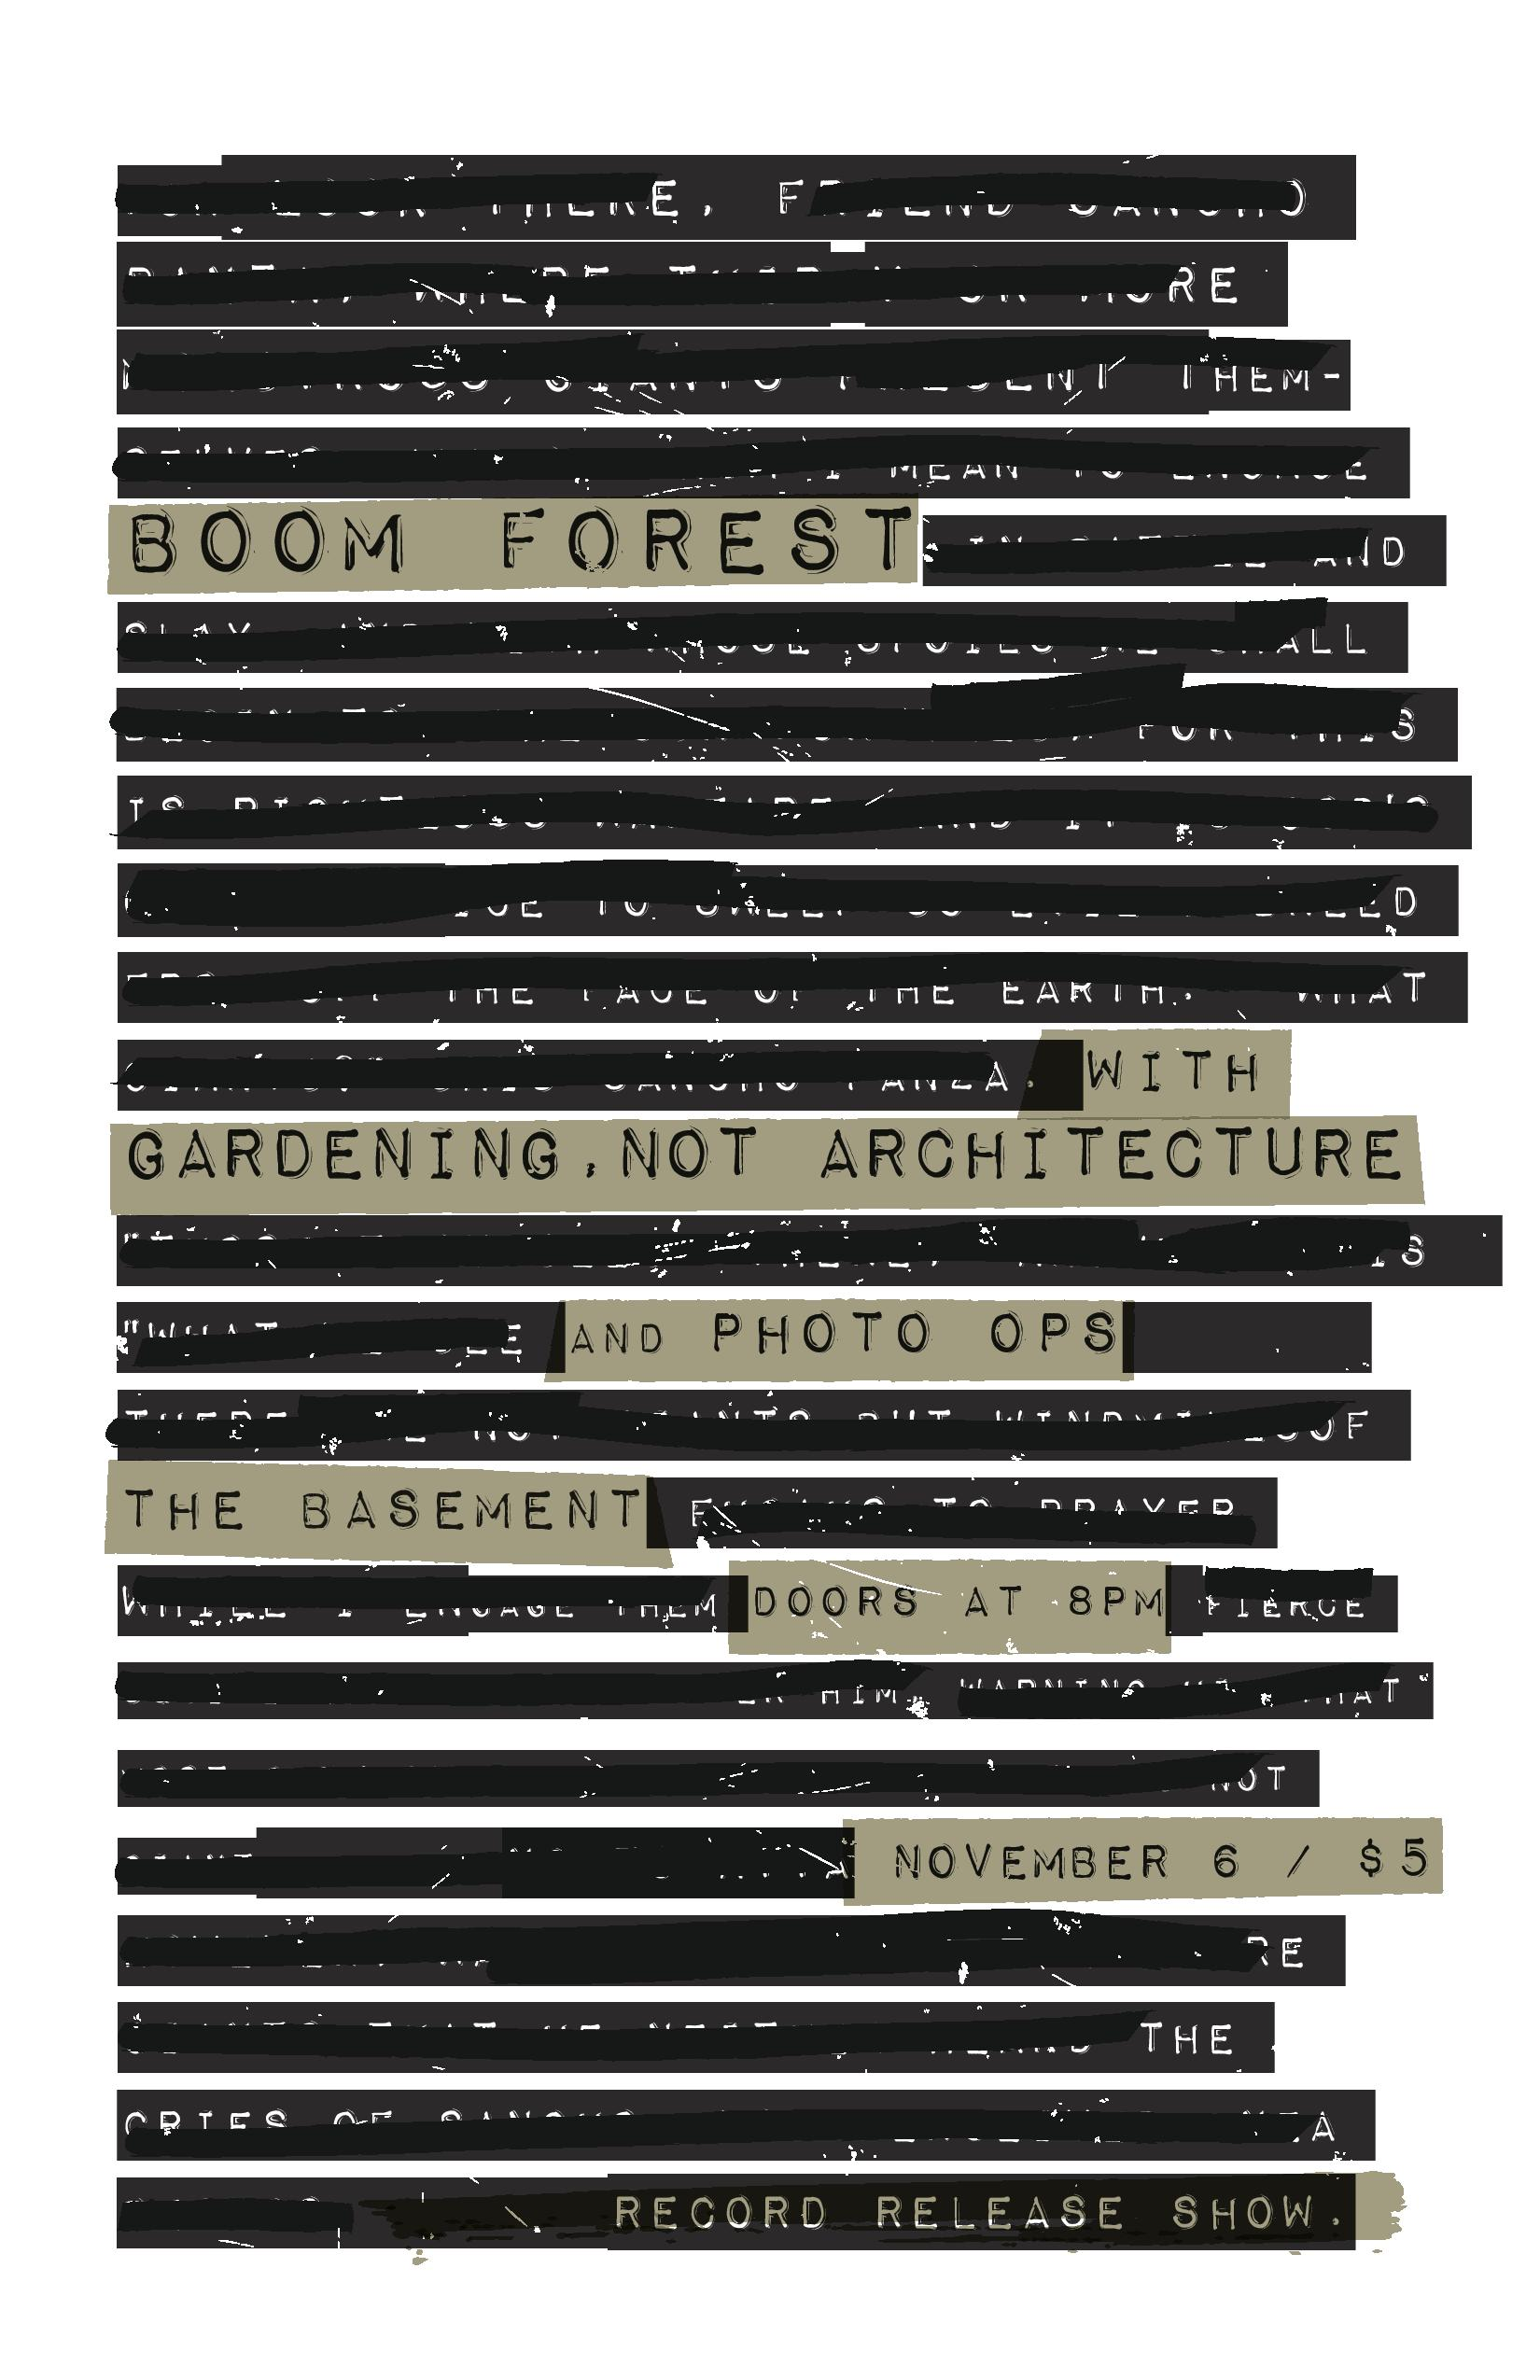 BoomForestReleaseShow_Poster